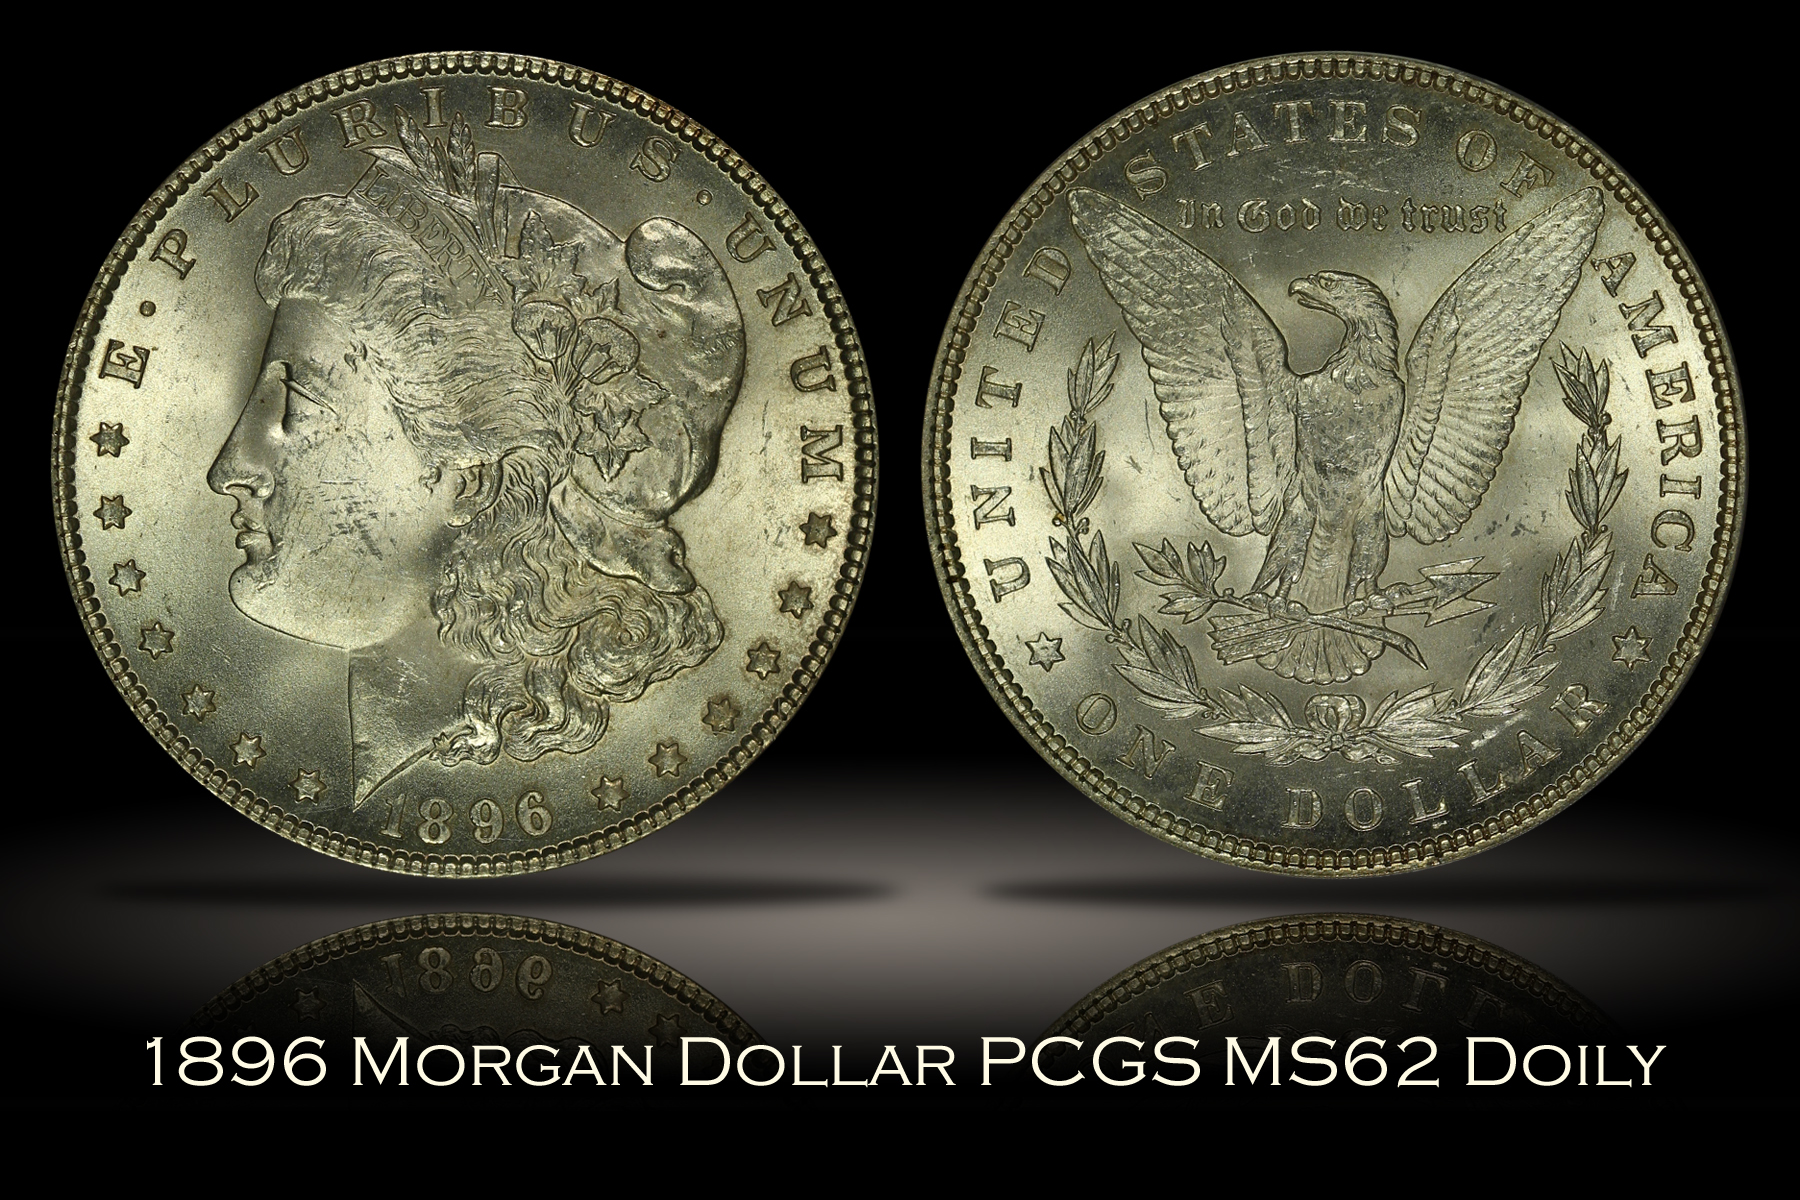 1896 Morgan Dollar PCGS MS62 DOILY